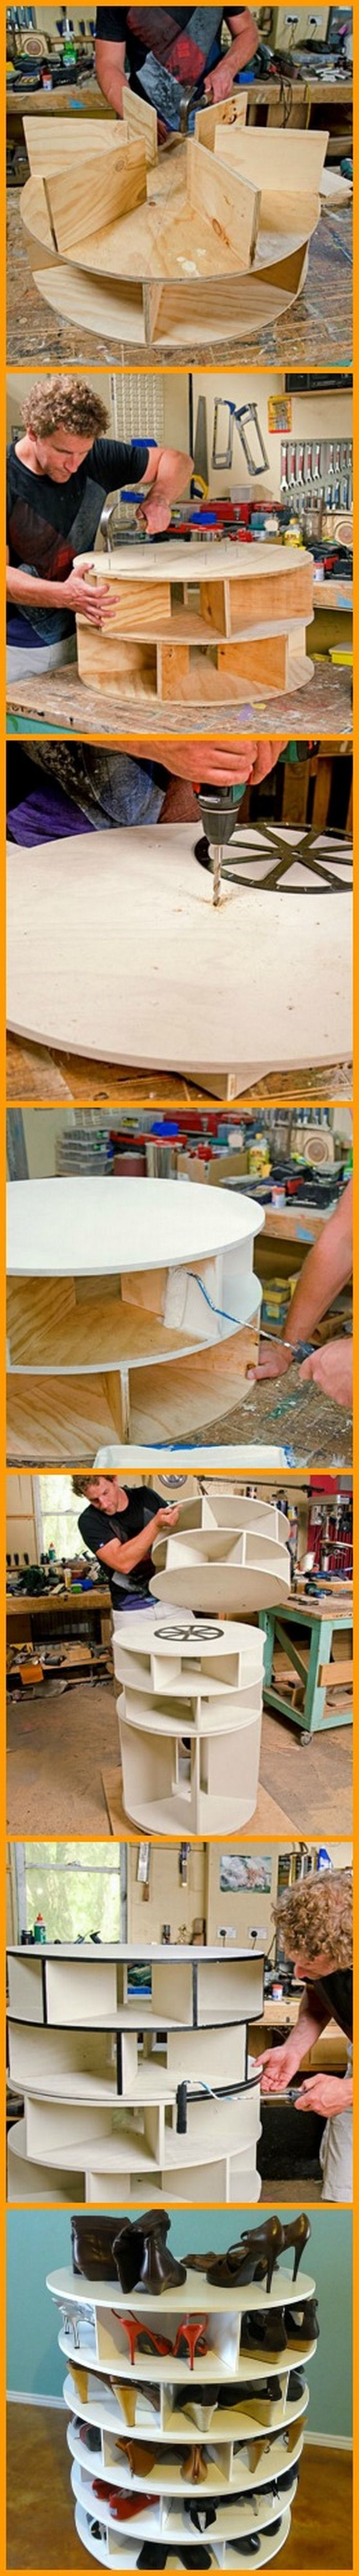 Keeping your shoes organized is made easier with this lazy Susan shoe rack. Build one for yourself by viewing the full album of the project at: http://theownerbuildernetwork.co/m4yq Do you know someone who needs this too?